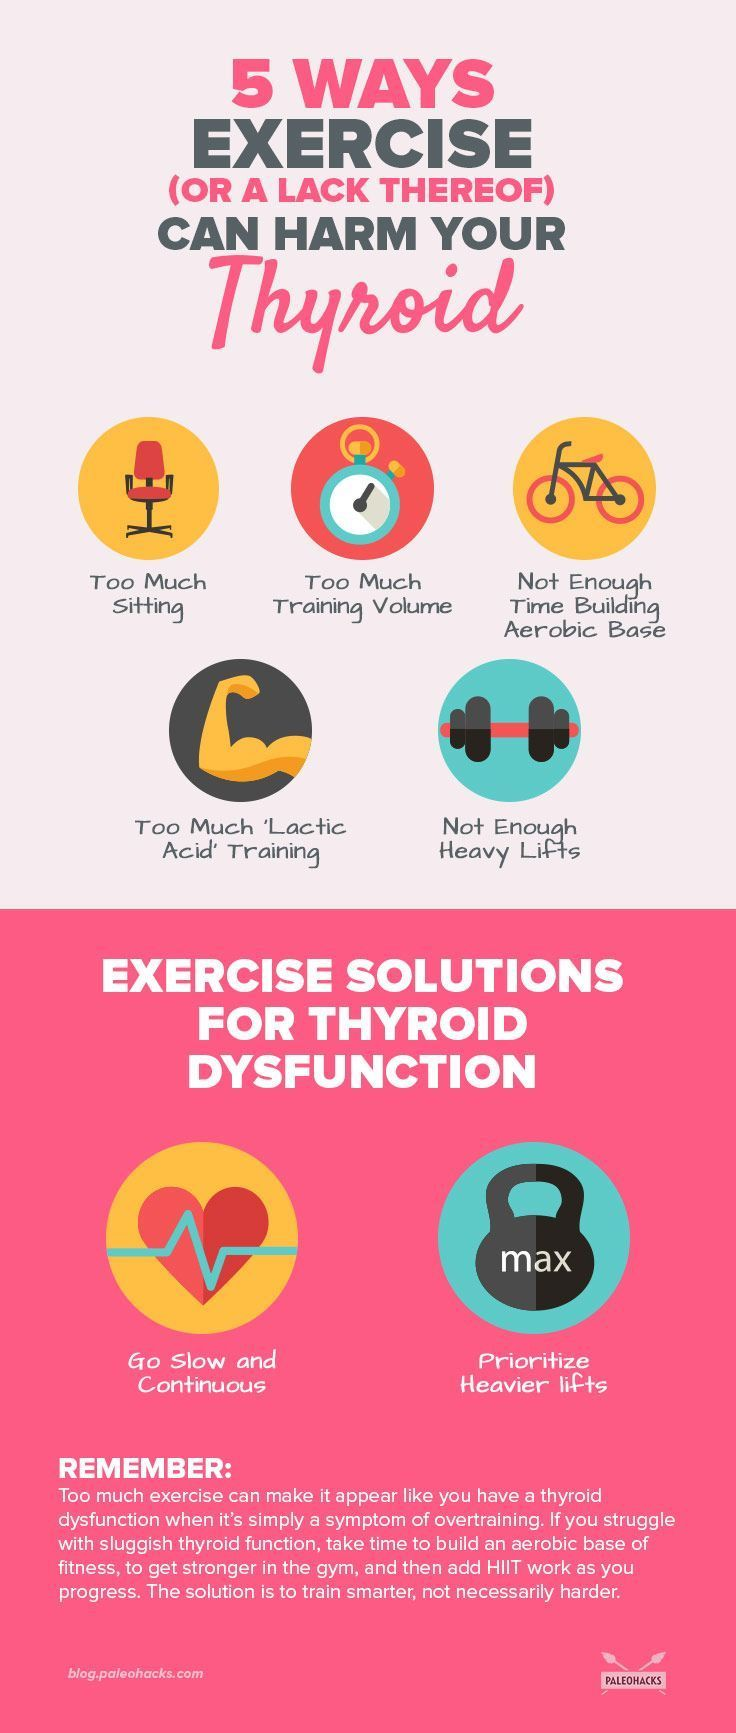 Exercise is a great tool to help restore healthy thyroid